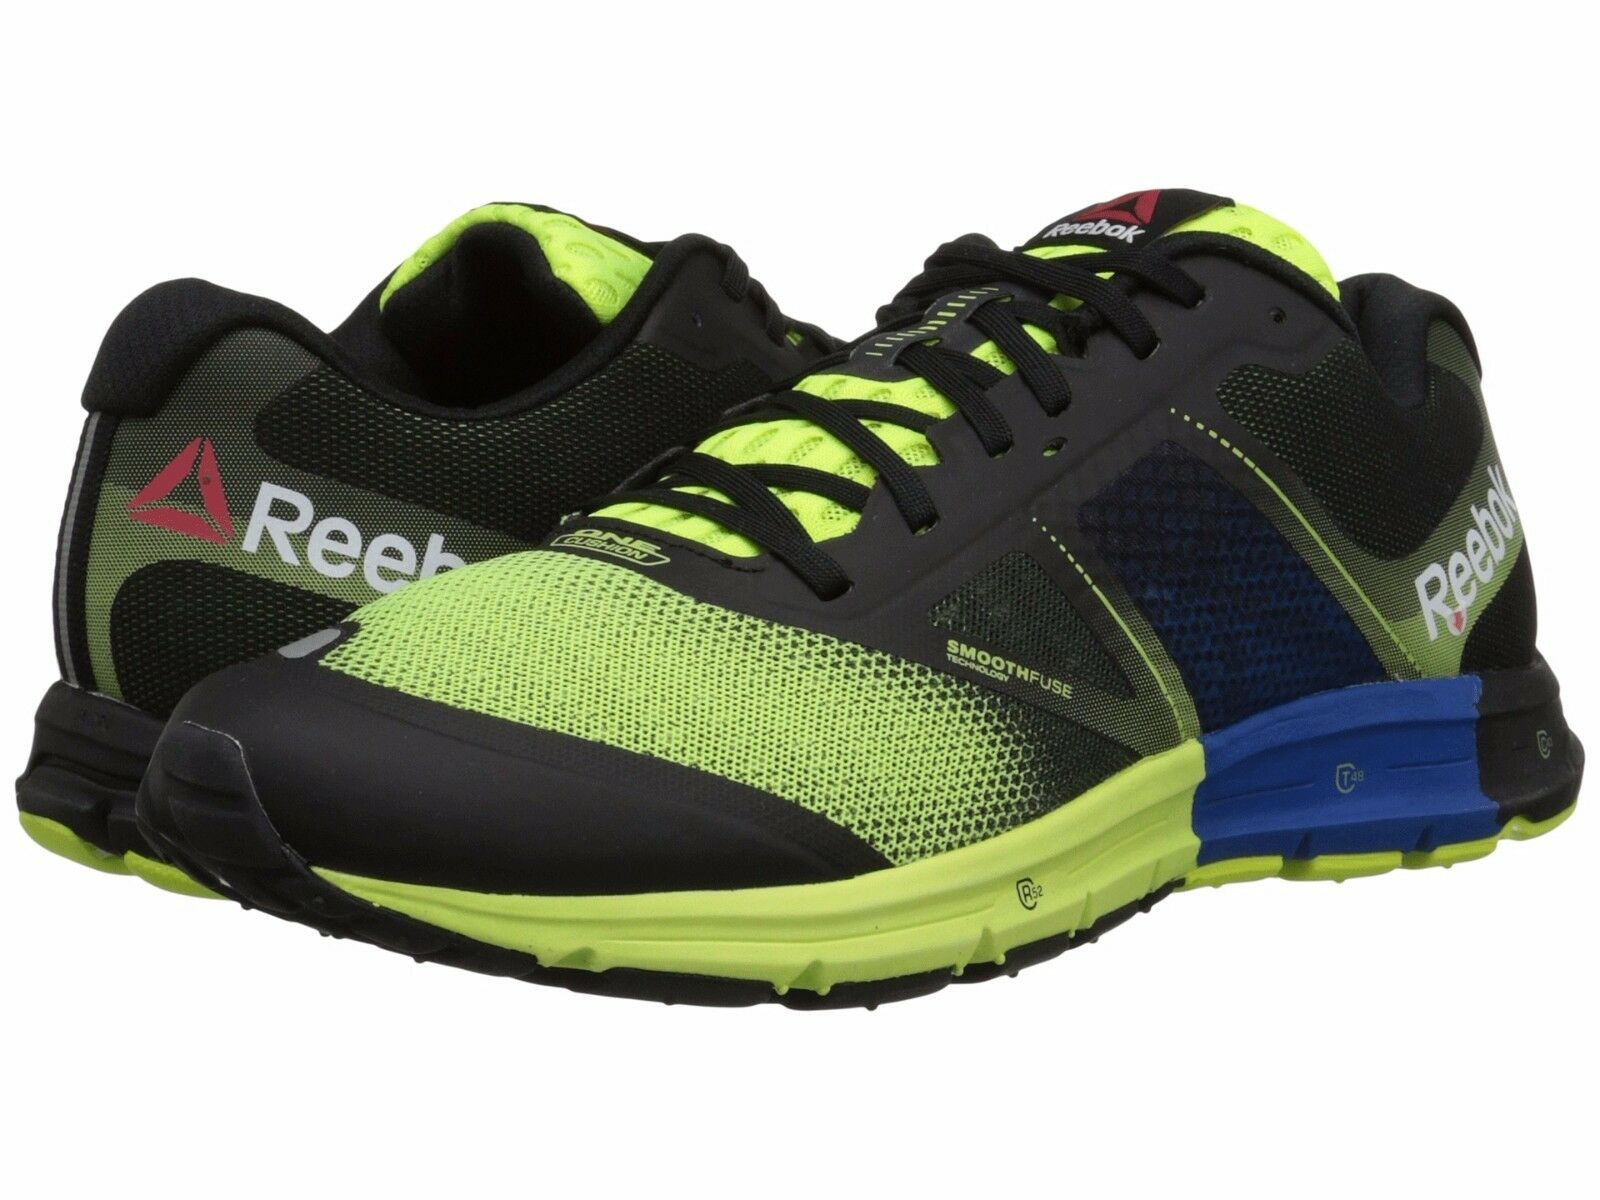 New Men's Reebok One Cushion 2.0 Athletic Sneakers Shoes SZ 13